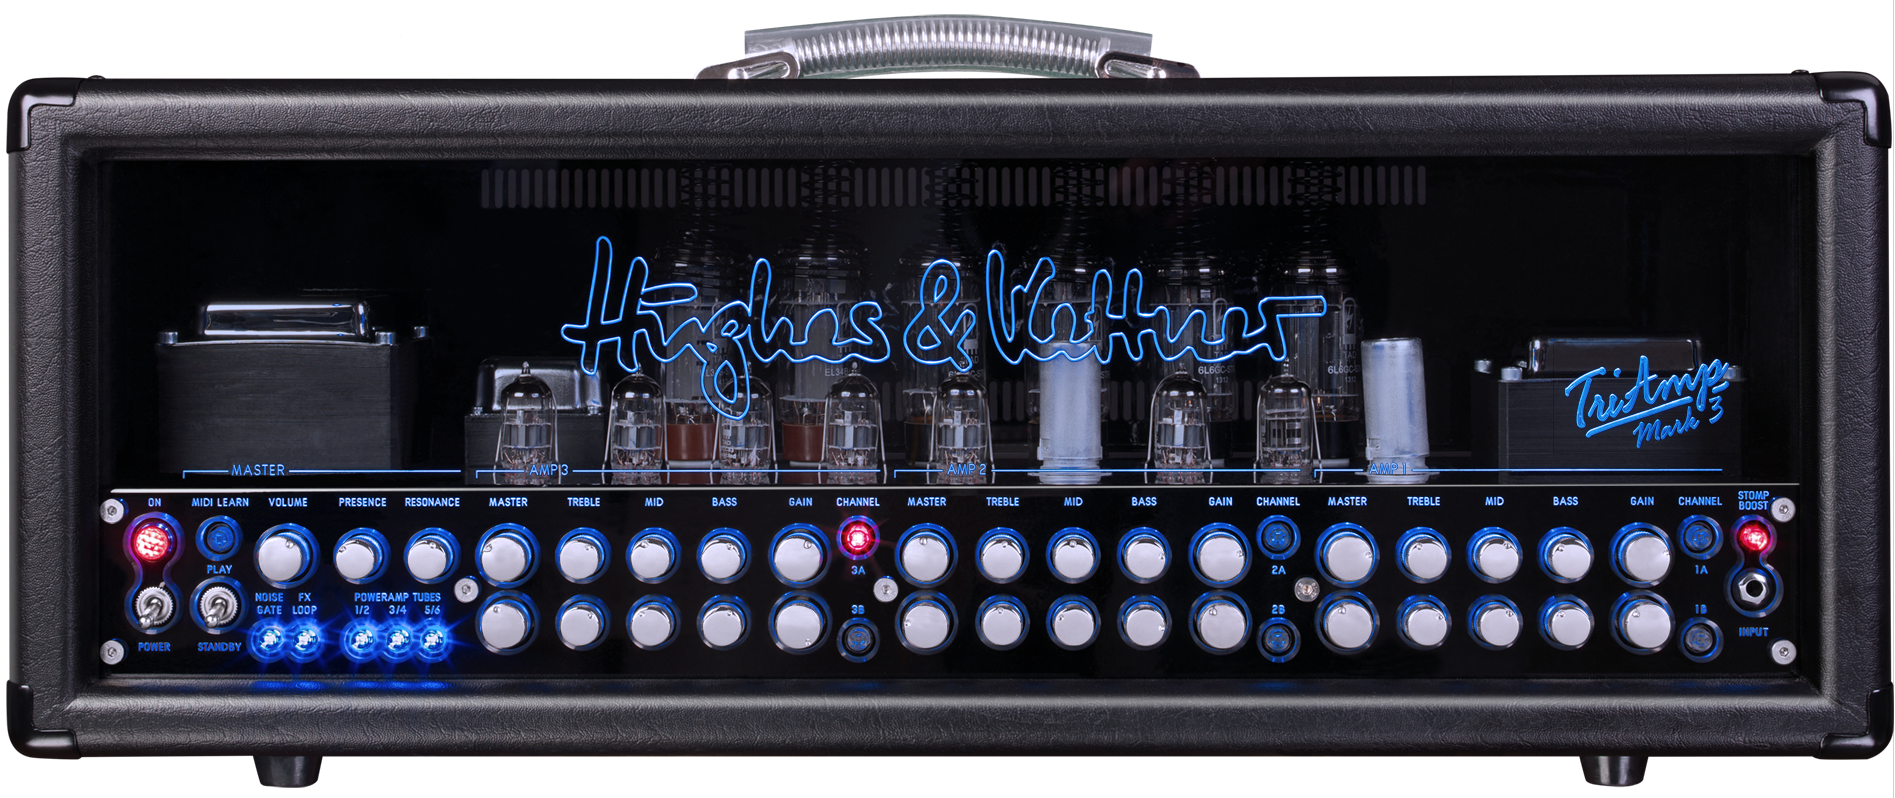 Audiofanzine Video On The Hughes Kettner Triamp Mark 3 Guitar Amp 20w Power Tube Amplifier With El34